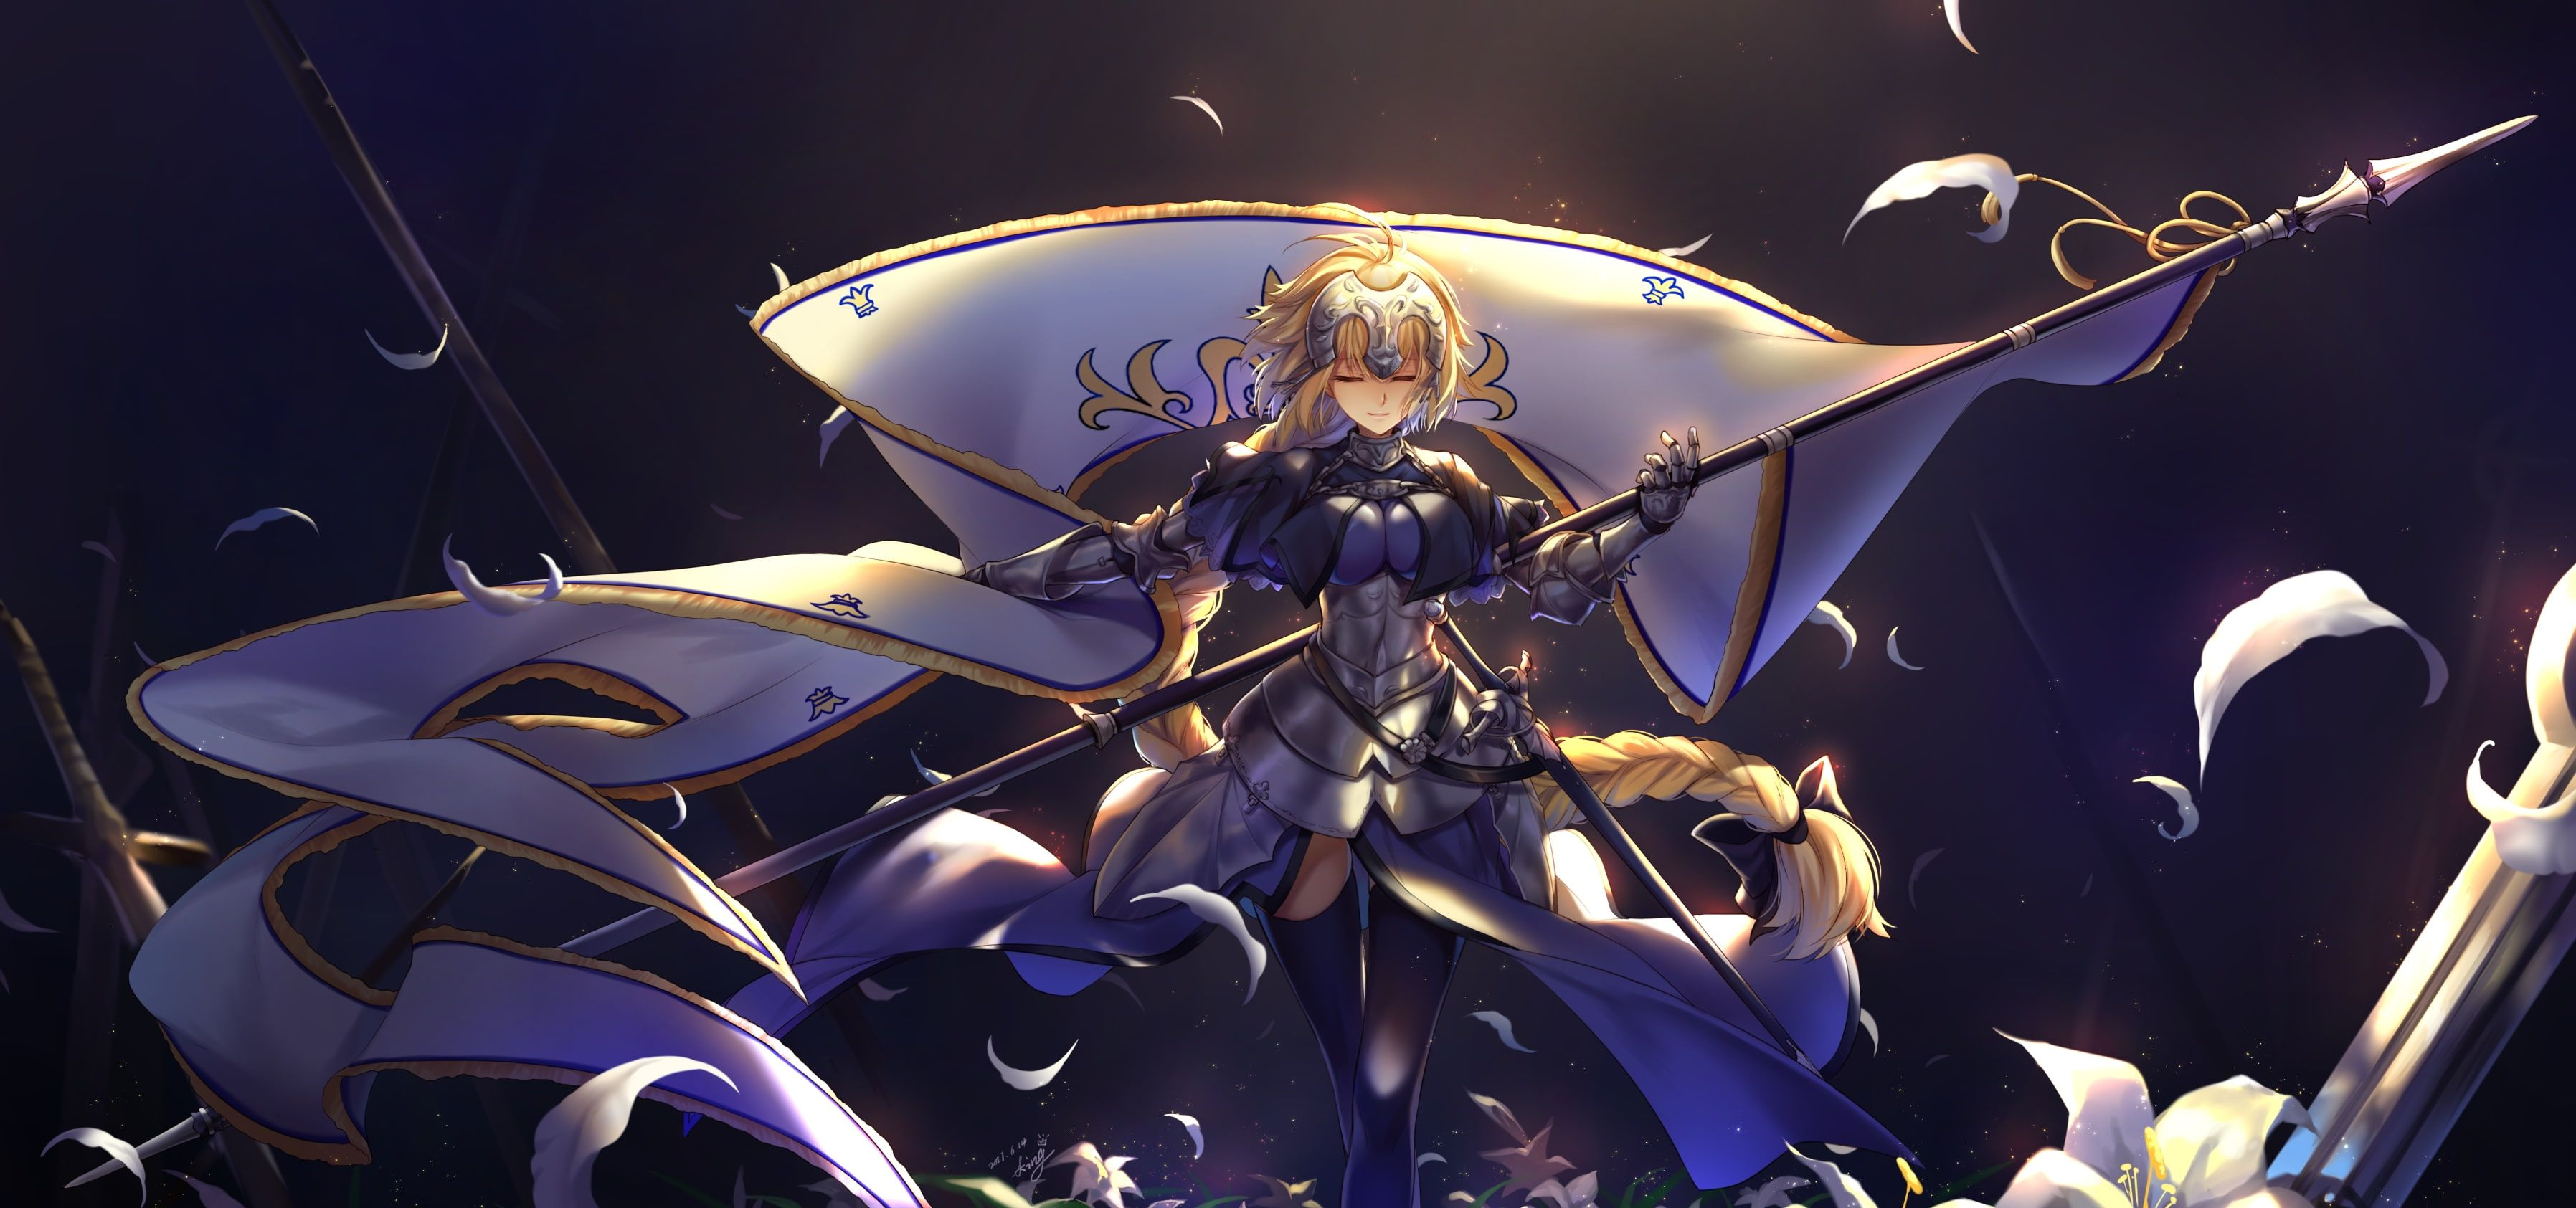 Jeanne D Arc Fate Apocrypha Fate Grand Order Blonde Spear Armor Closed Eyes Anime 2k Wallpaper Hdwallpaper Desktop Jeanne D Arc Anime Joan Of Arc